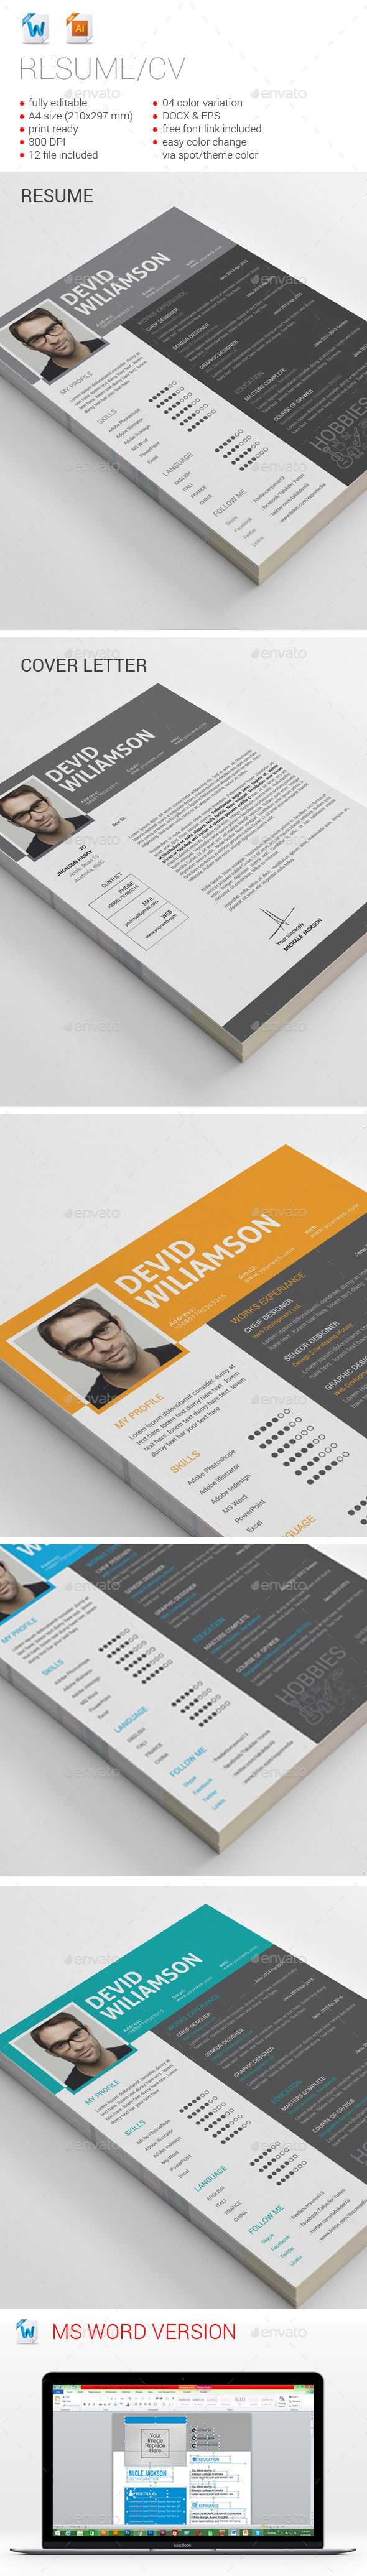 Best Awesome Resume Designs Images On   Resume Design